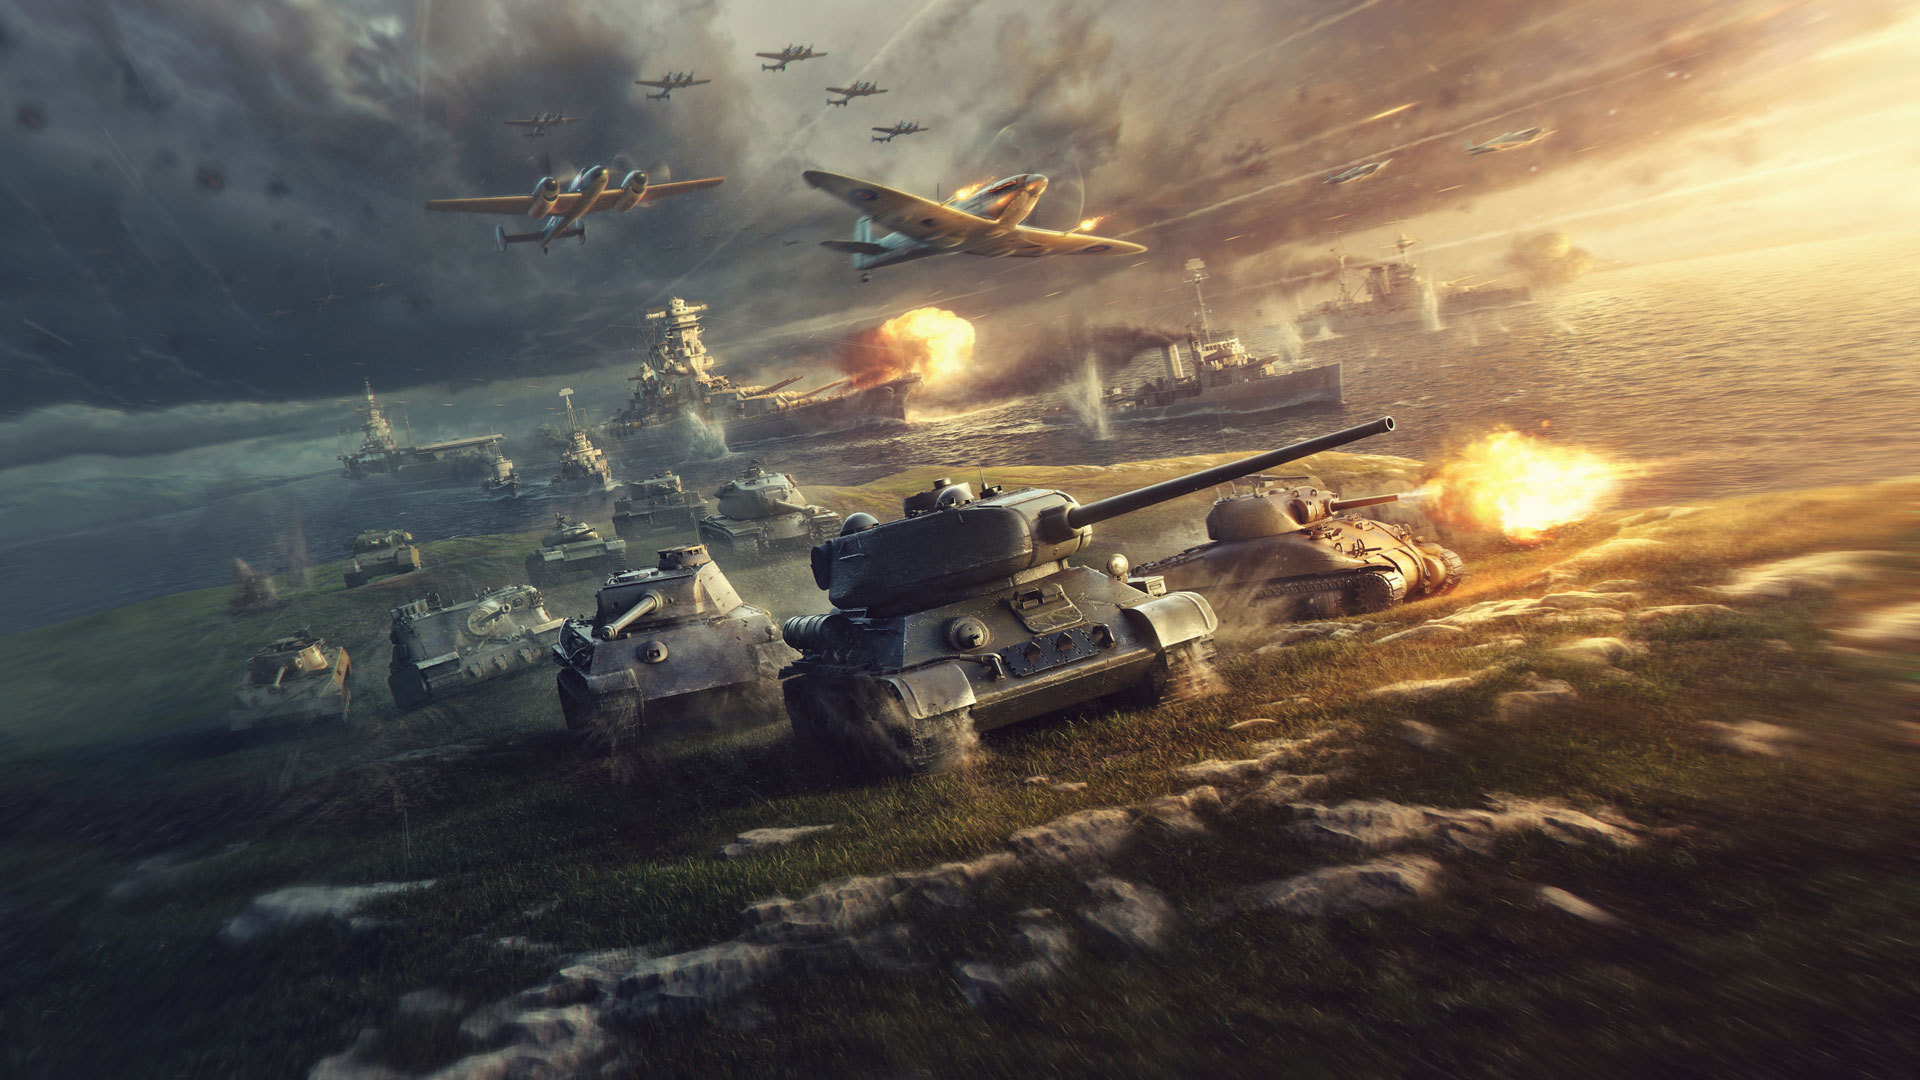 Players in World of Tanks and in World of Warships will be able to partake in Project V.A.L.O.R.